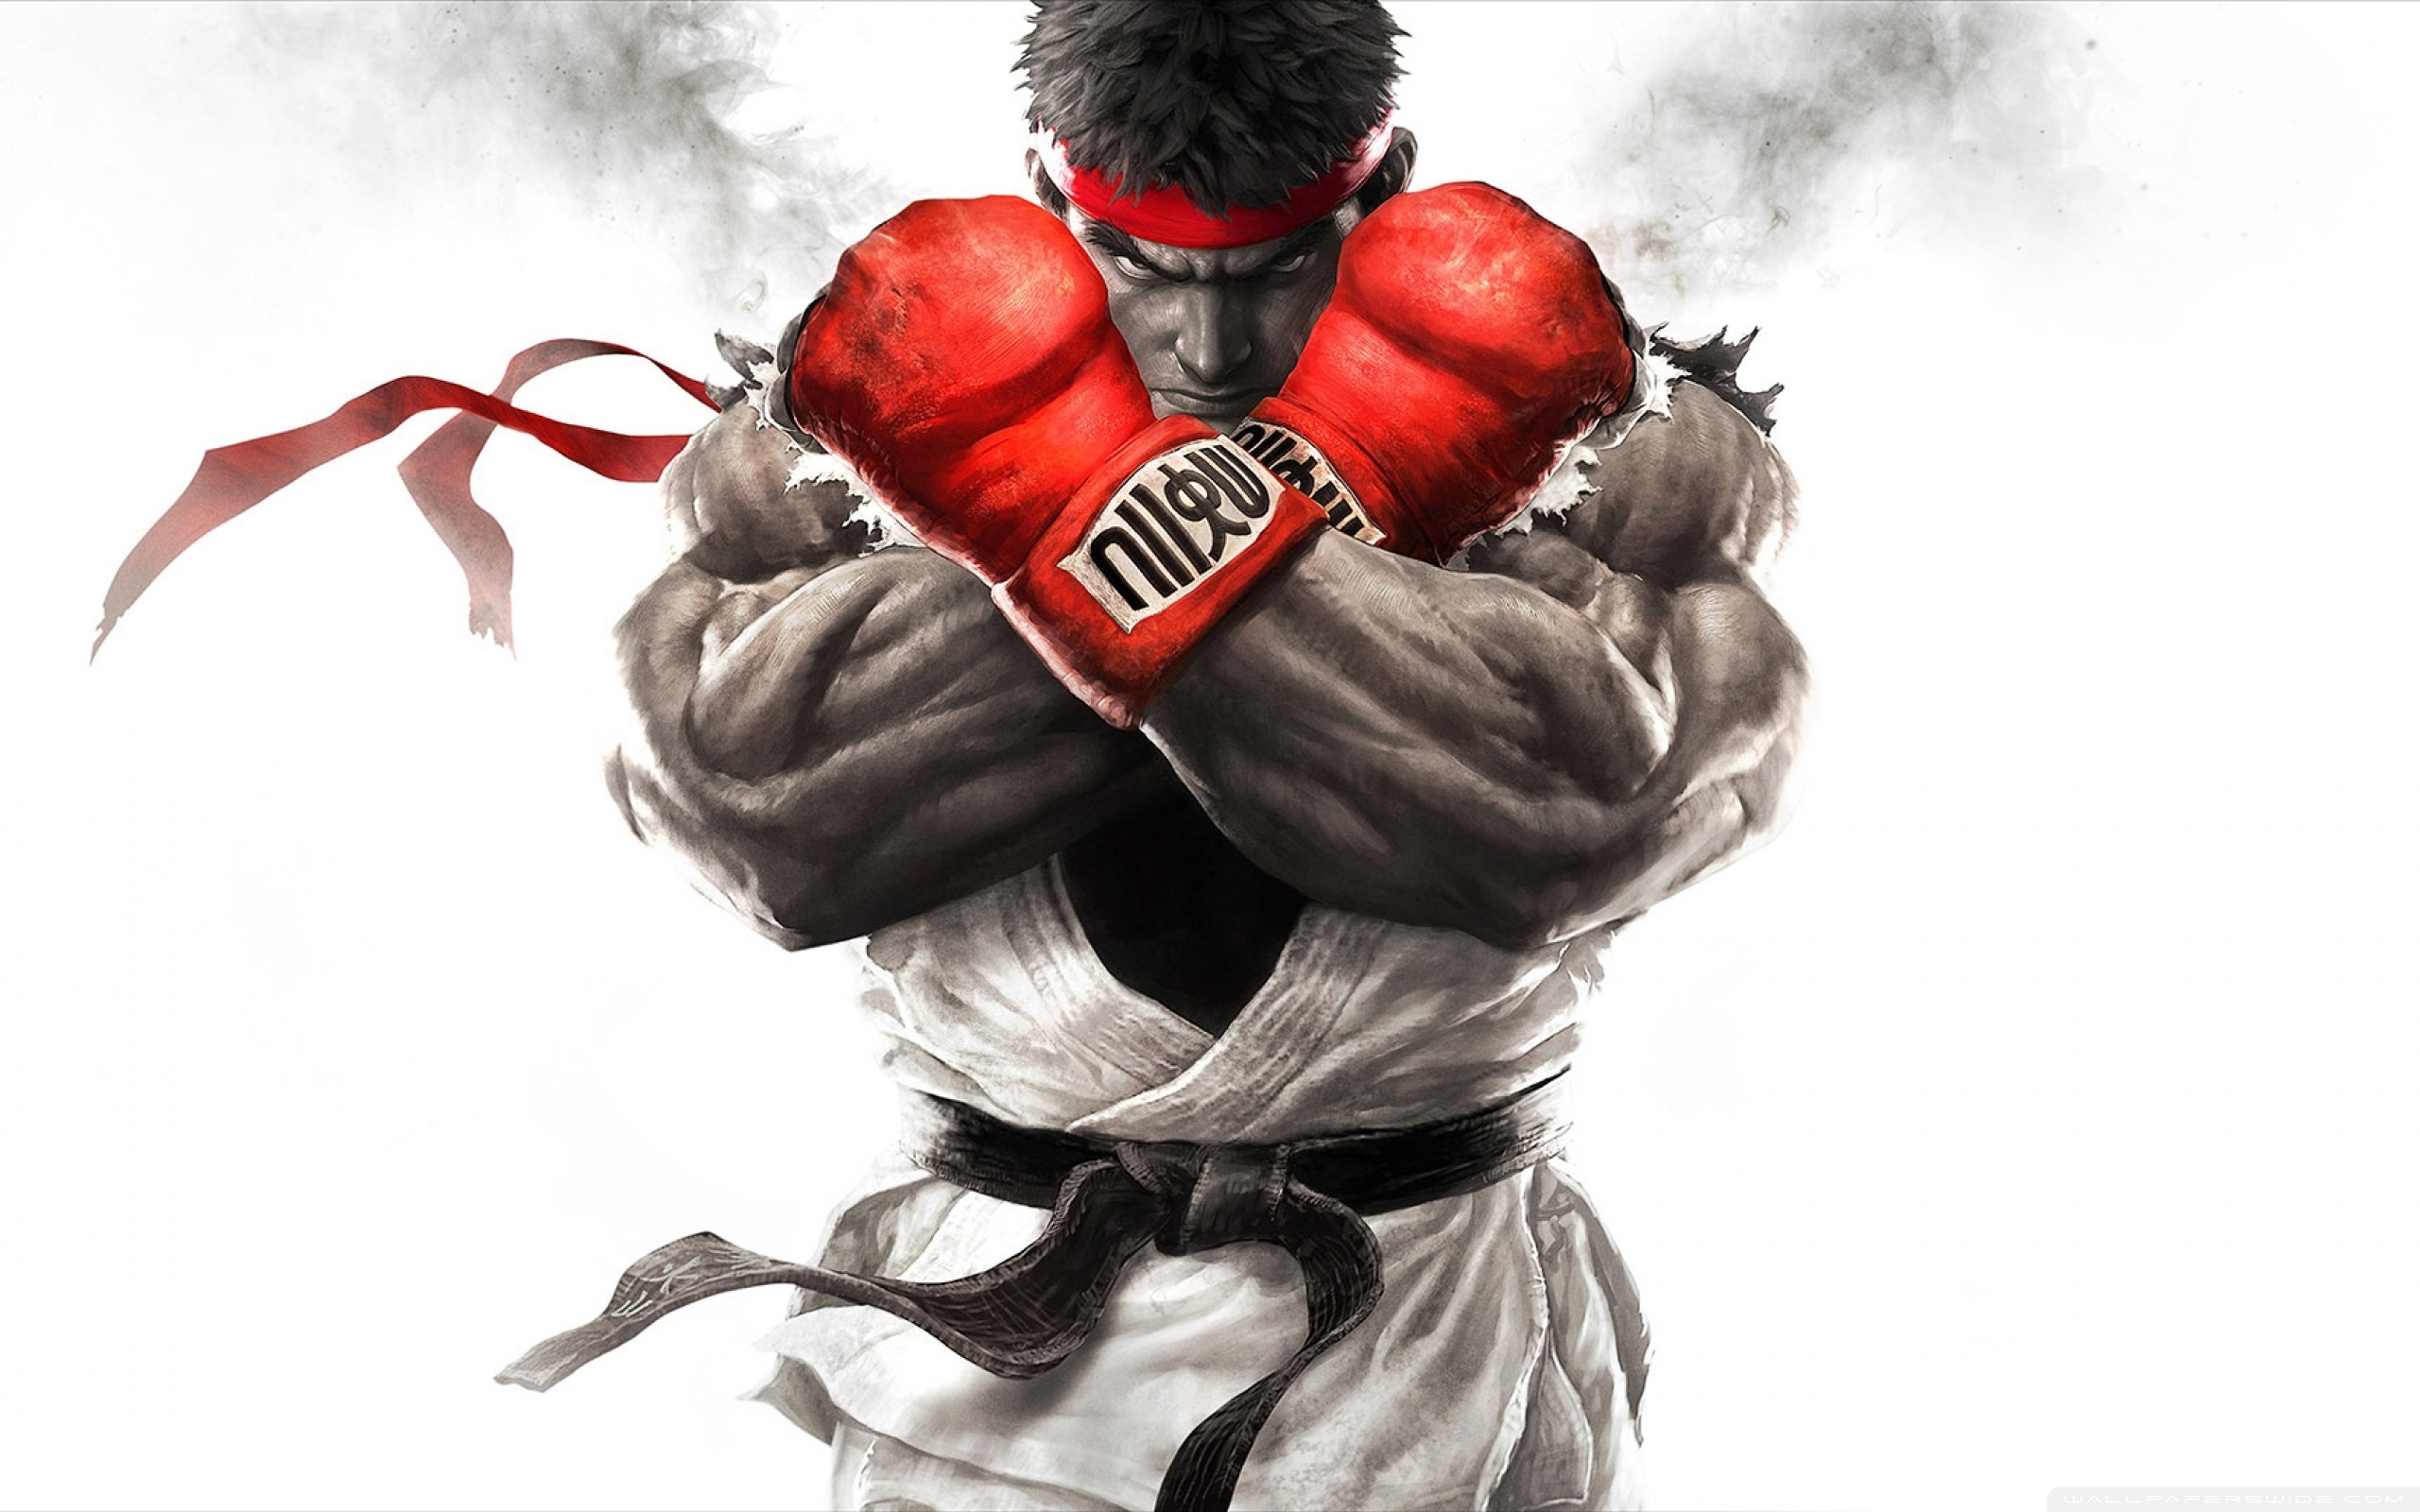 wallpaperswide ❤ street fighter hd desktop wallpapers for 4k